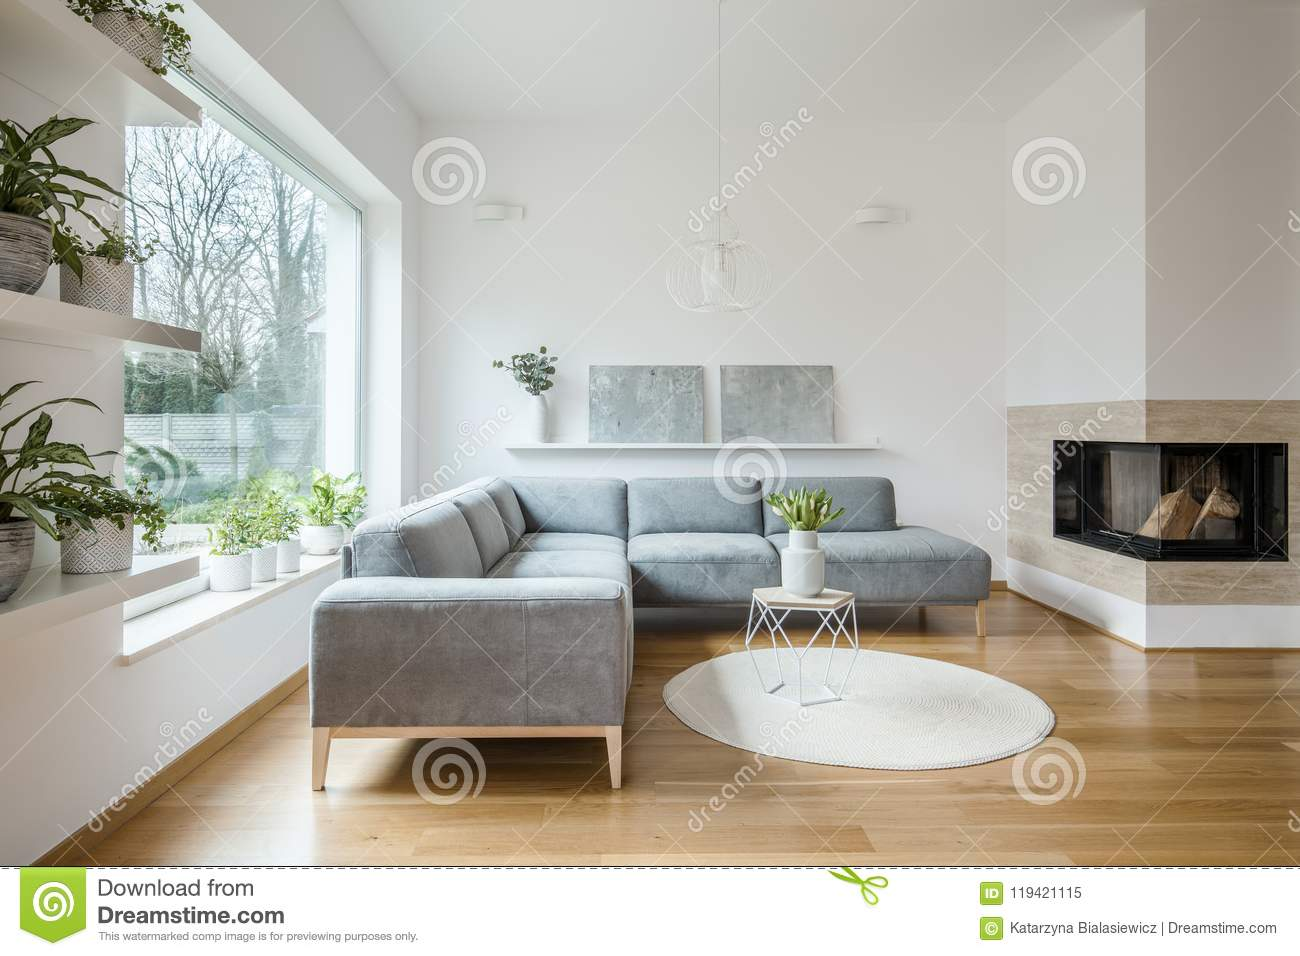 Grey corner lounge standing in white living room interior with two modern art paintings on the shelf, fireplace and tulips on smal